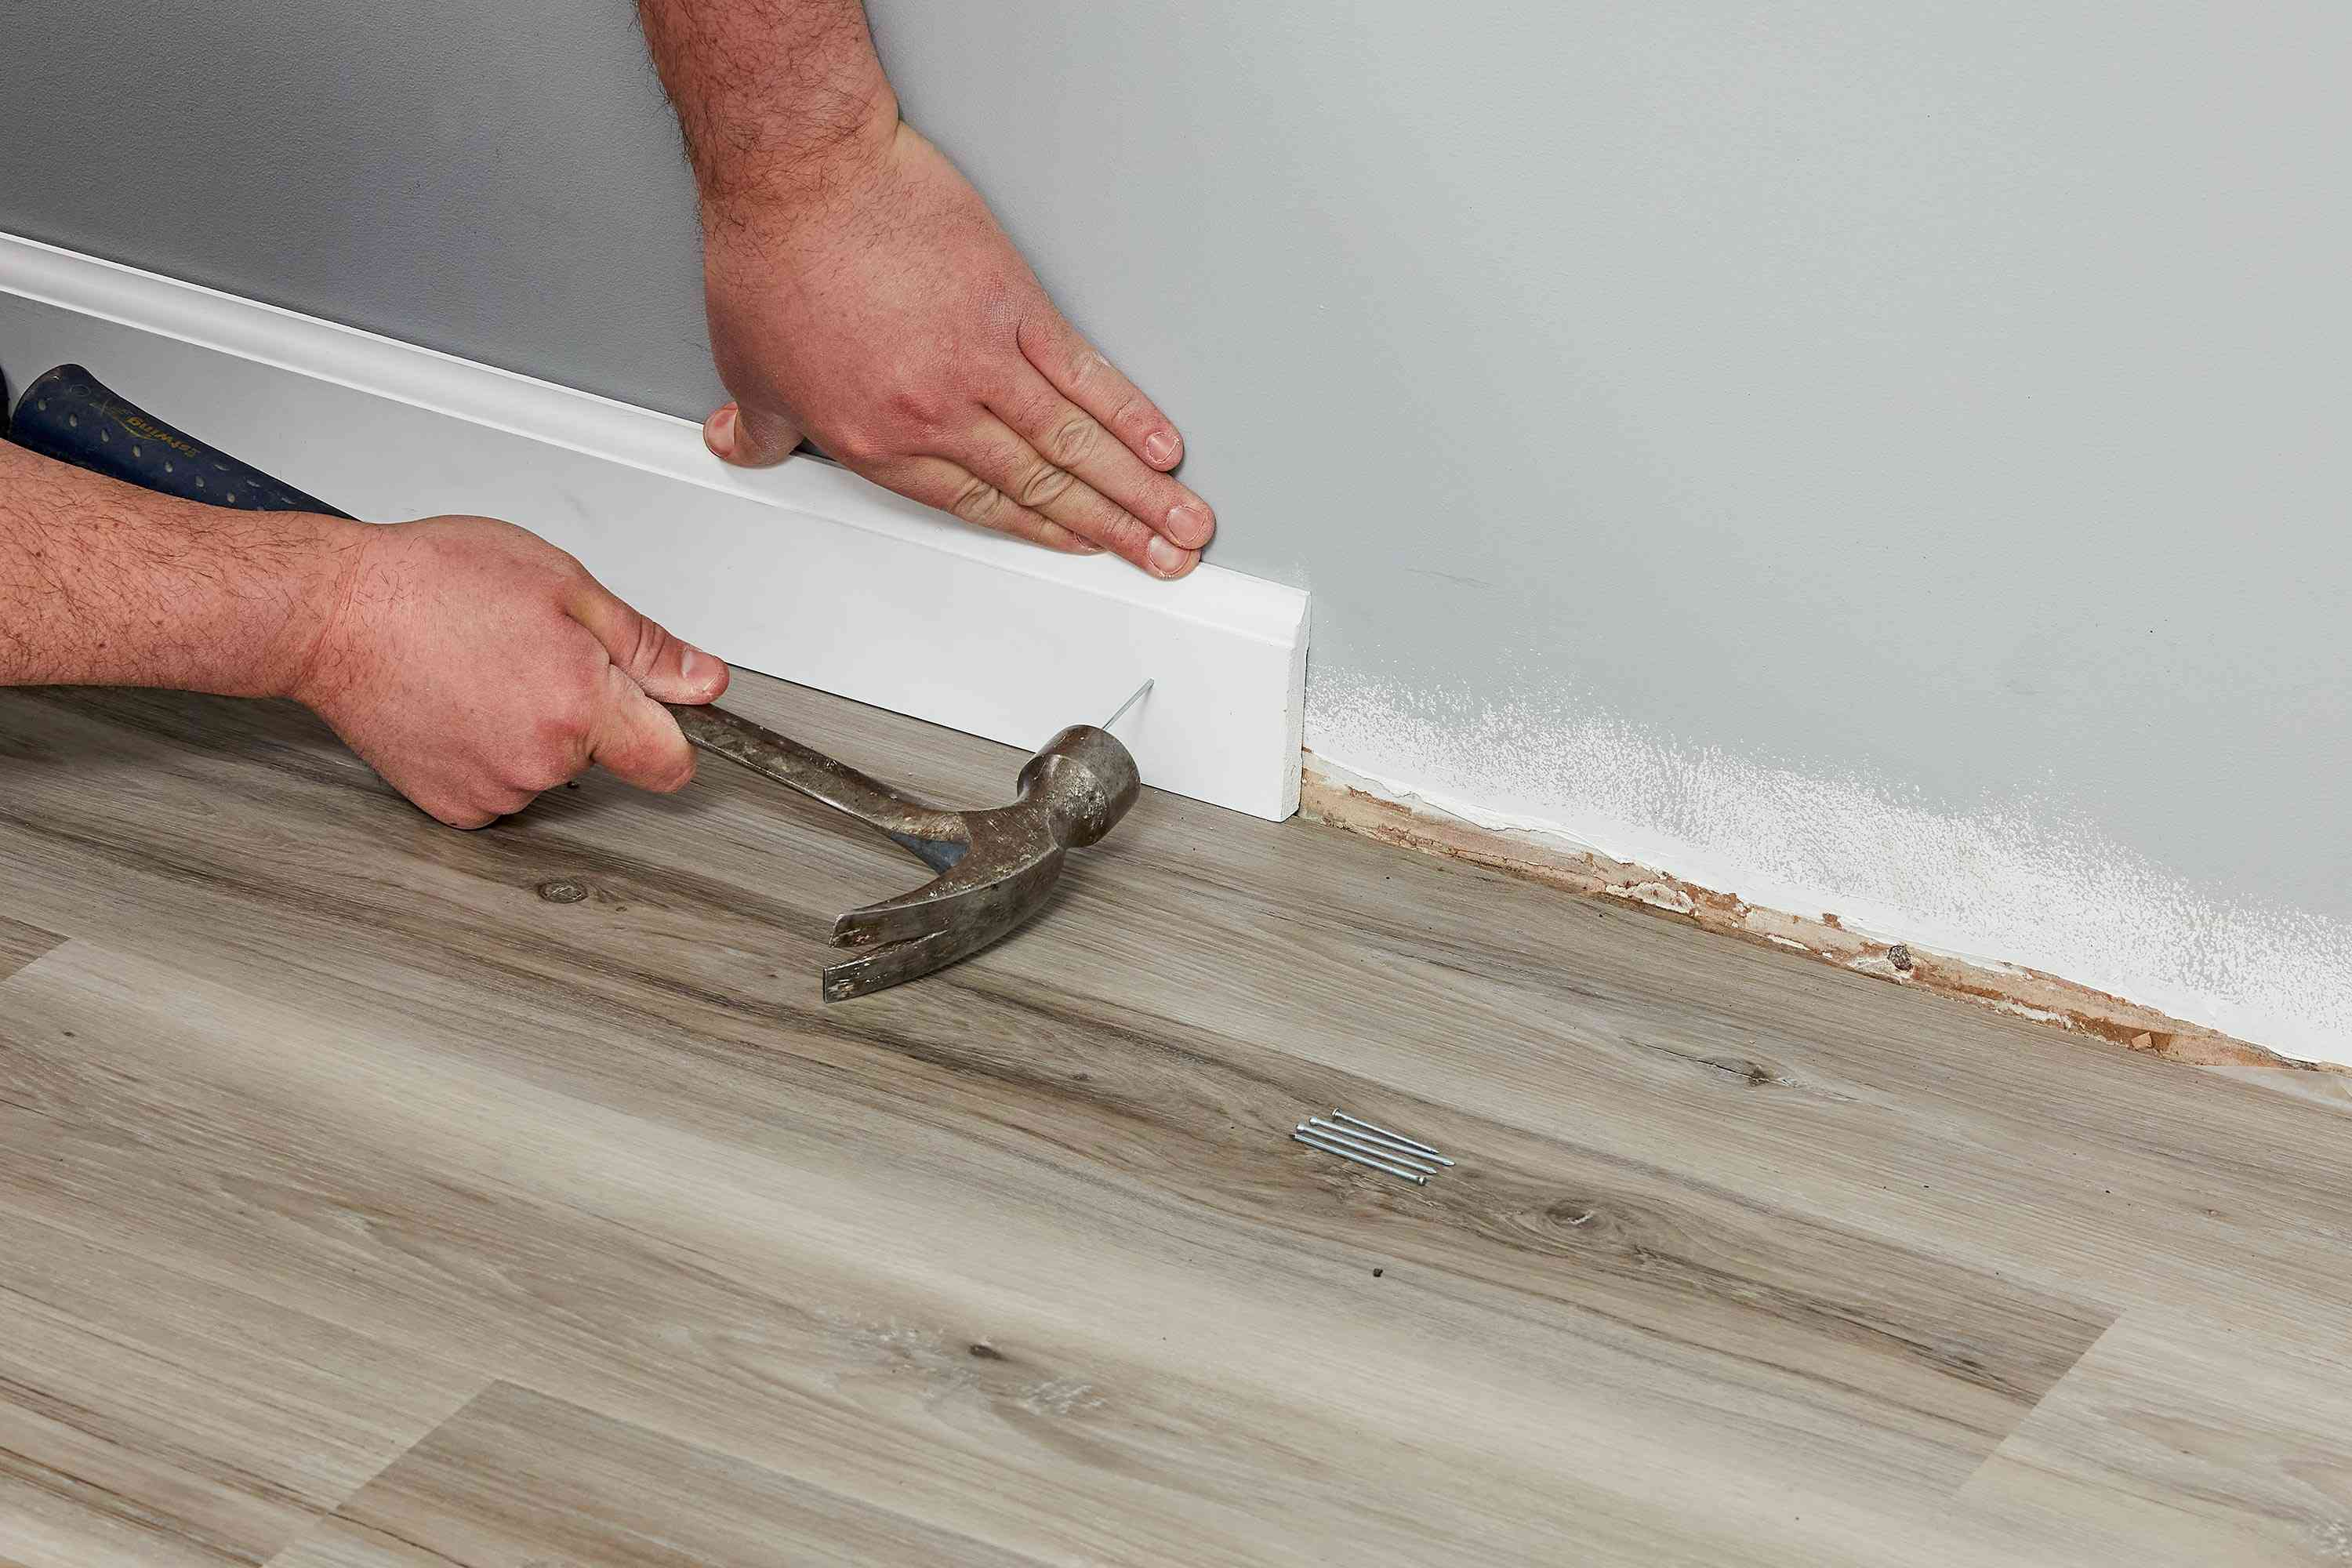 White trim reinstalled by hammer and nail